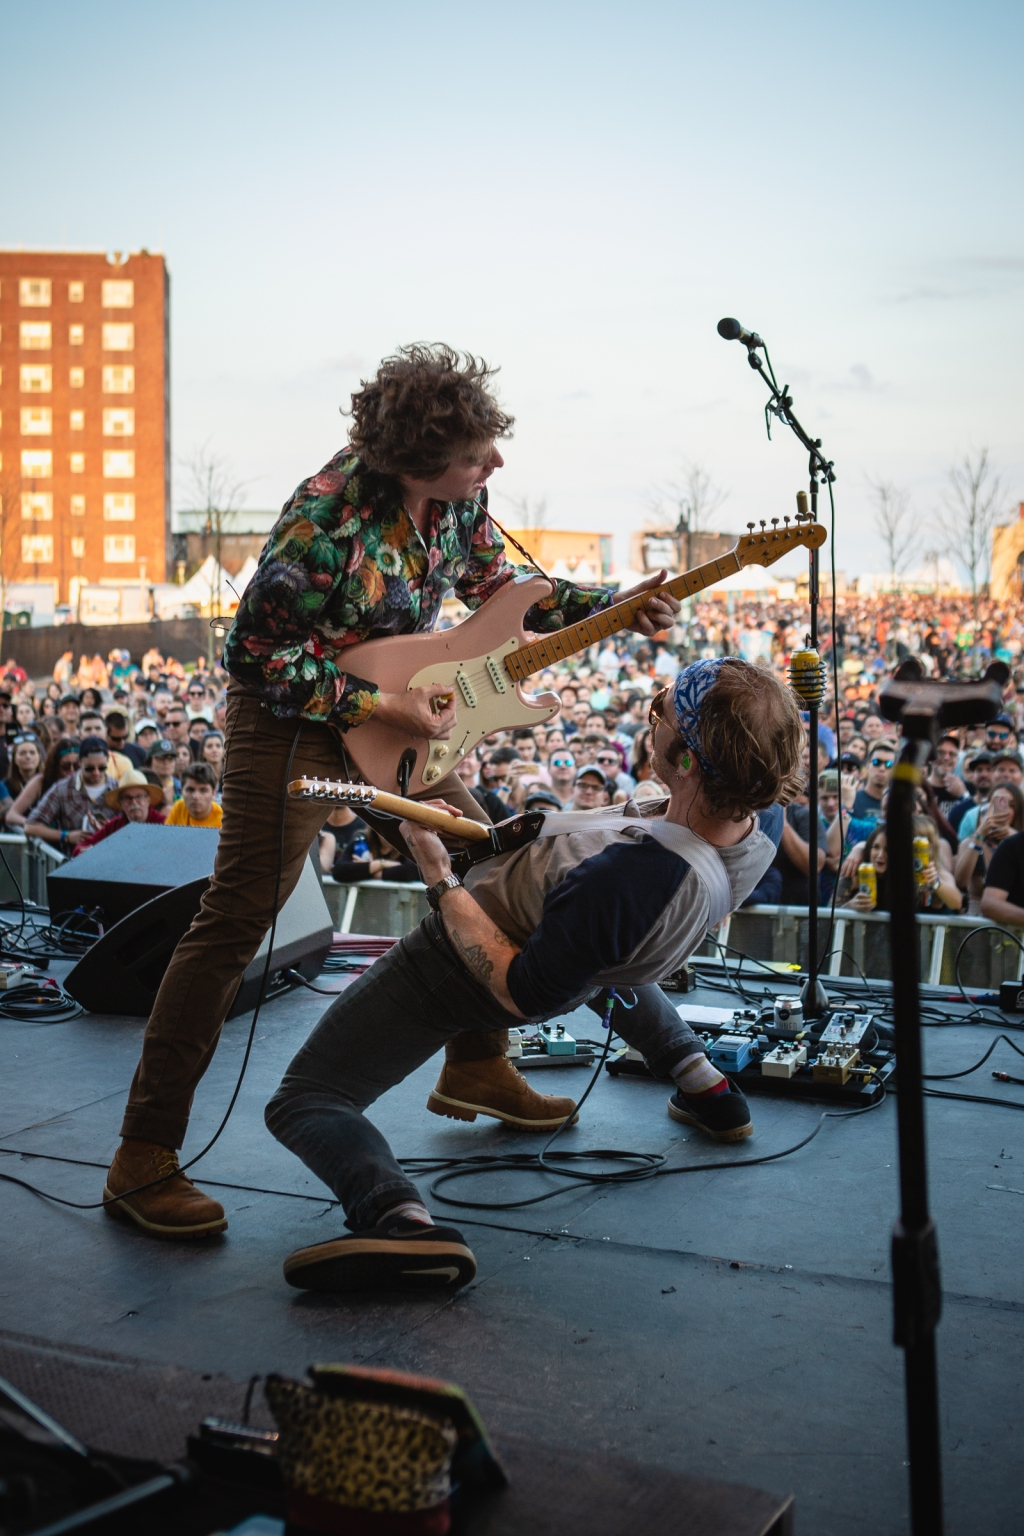 Ian O'neil and John McCauley of Deer Tick get low on the Park Stage.